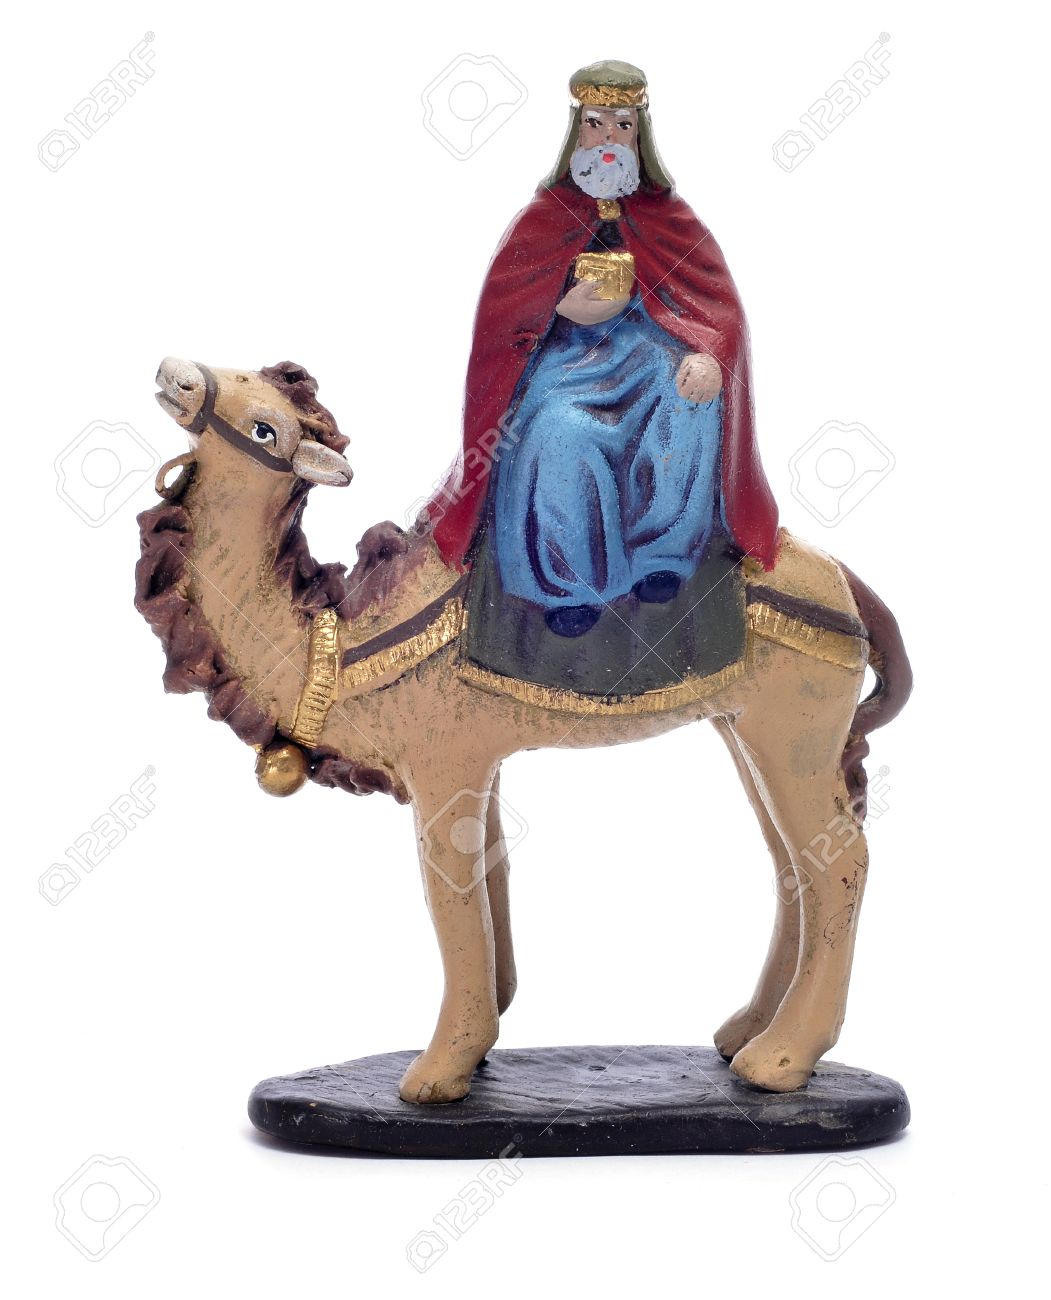 figure representing Caspar Magi riding a camel on a white background Stock Photo - 11326337